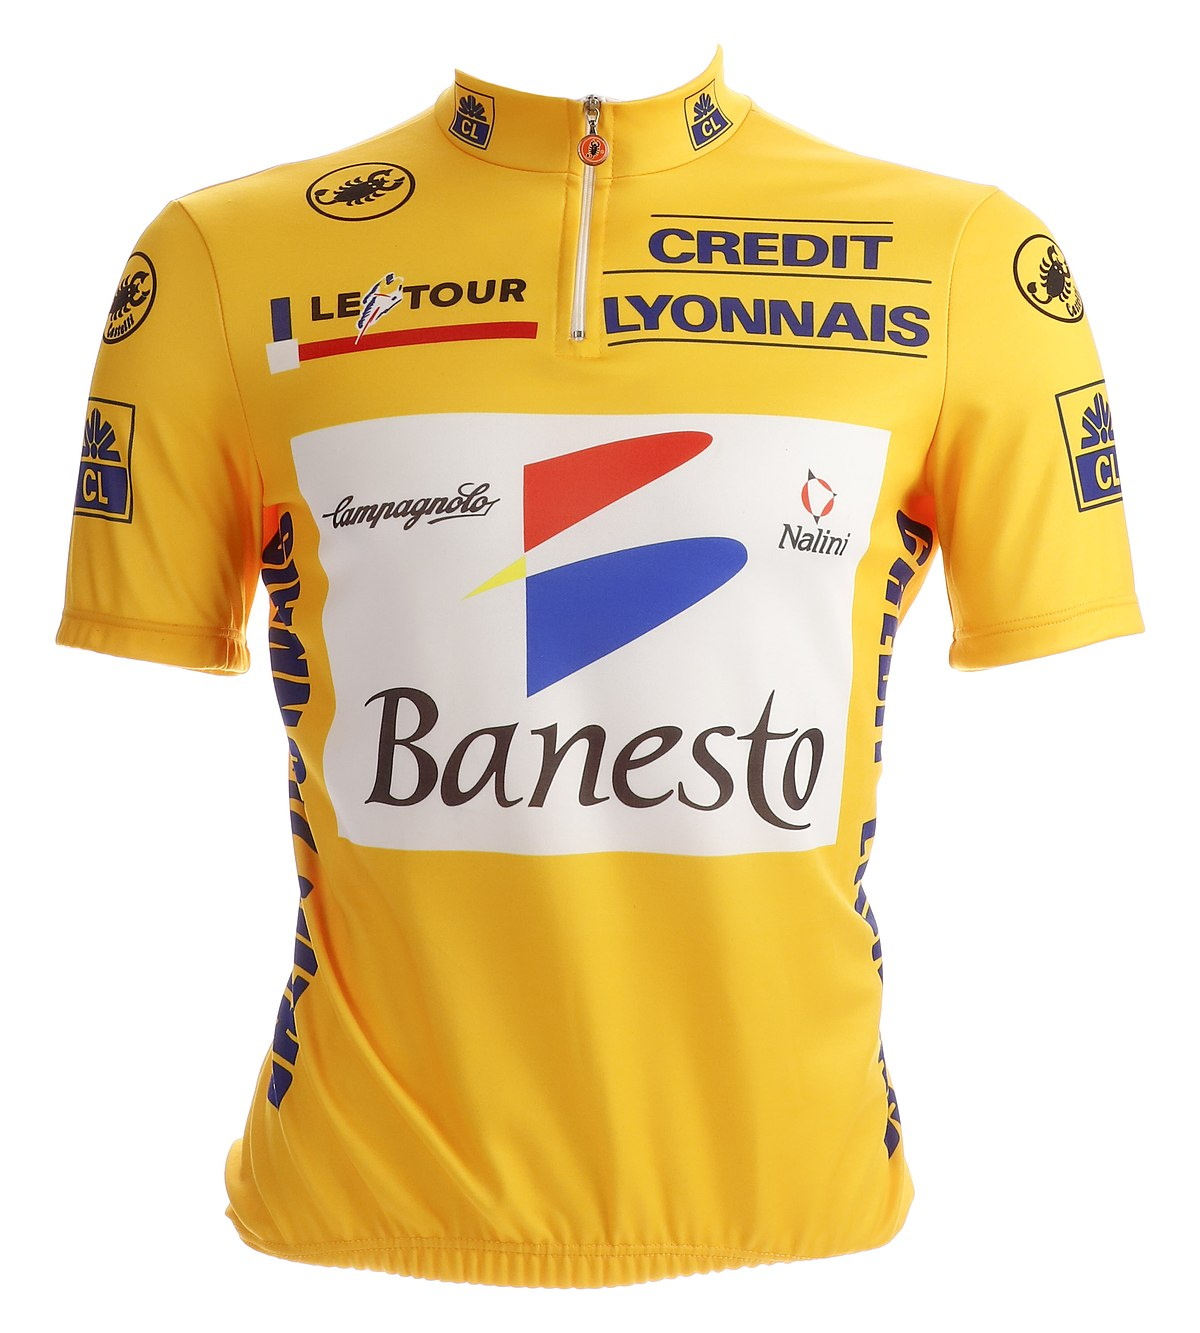 General classification in the Tour de France - Wikipedia